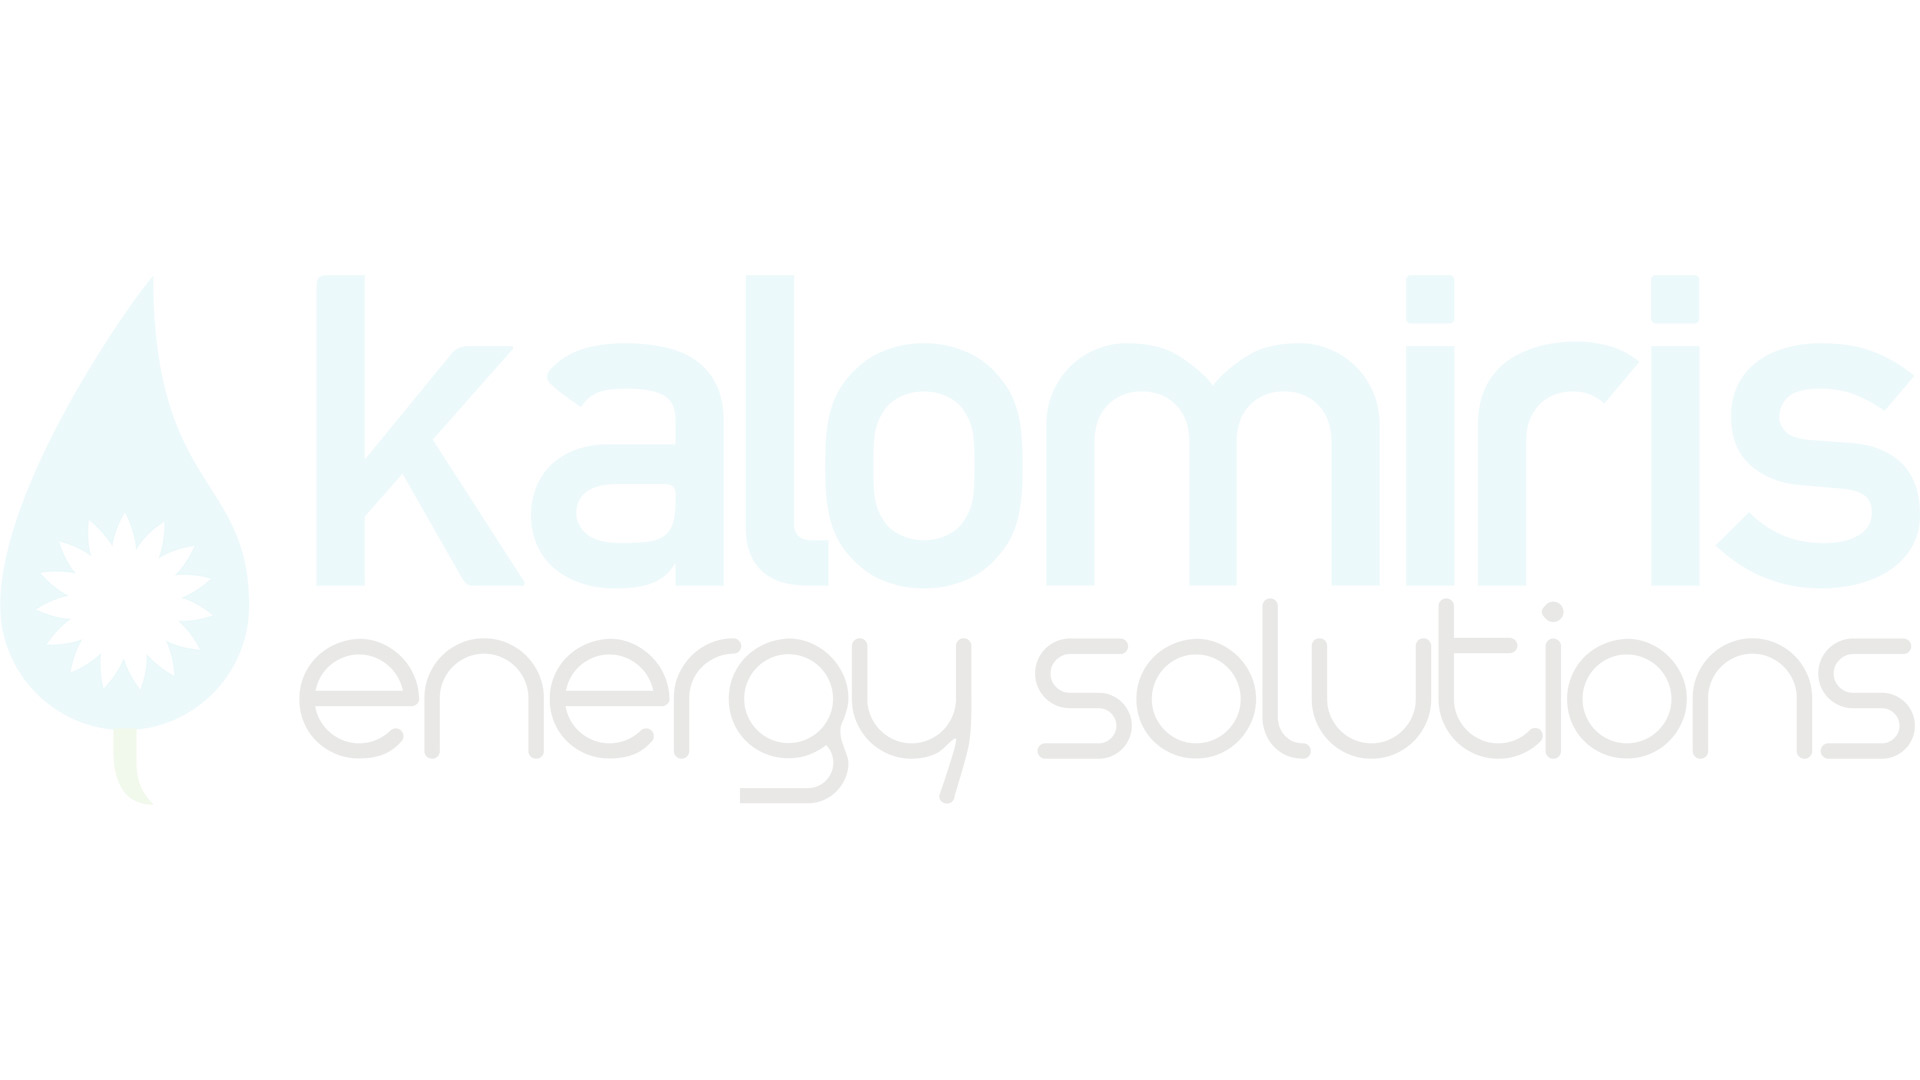 Ceiling Fan CASAFAN ECO AVIATOS 162 BN-KI 64 (162cm)